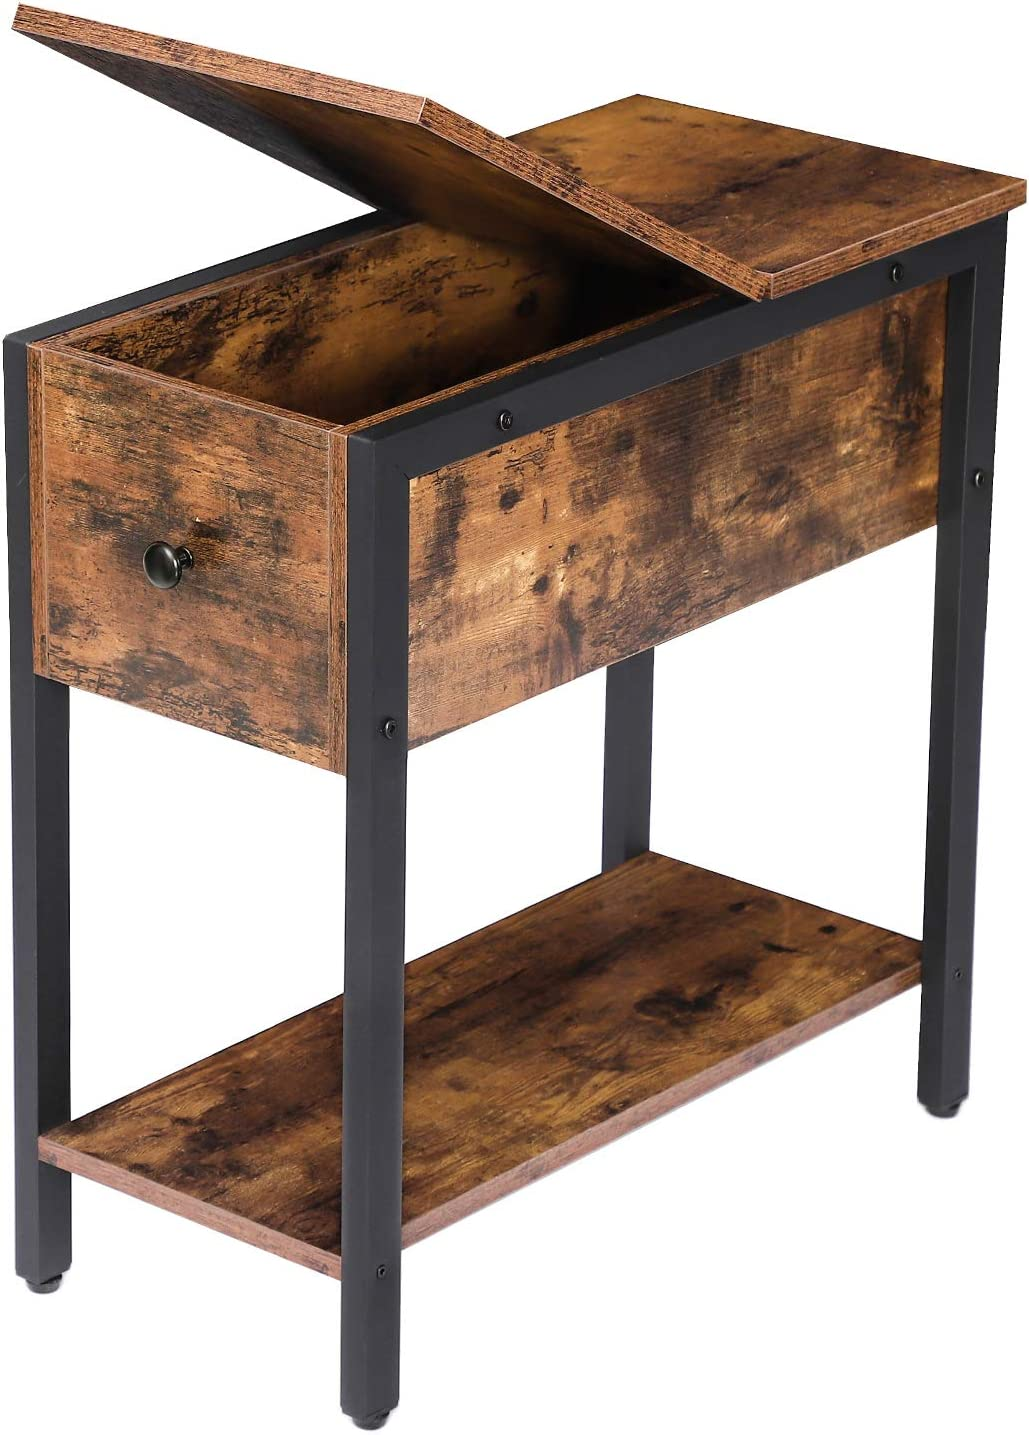 Amazon Com Hoobro End Table Flip Top Side Table With Storage Shelf Narrow Nightstand For Small Spaces Stable And Sturdy Construction Rustic Brown Bf34bz01 Kitchen Dining